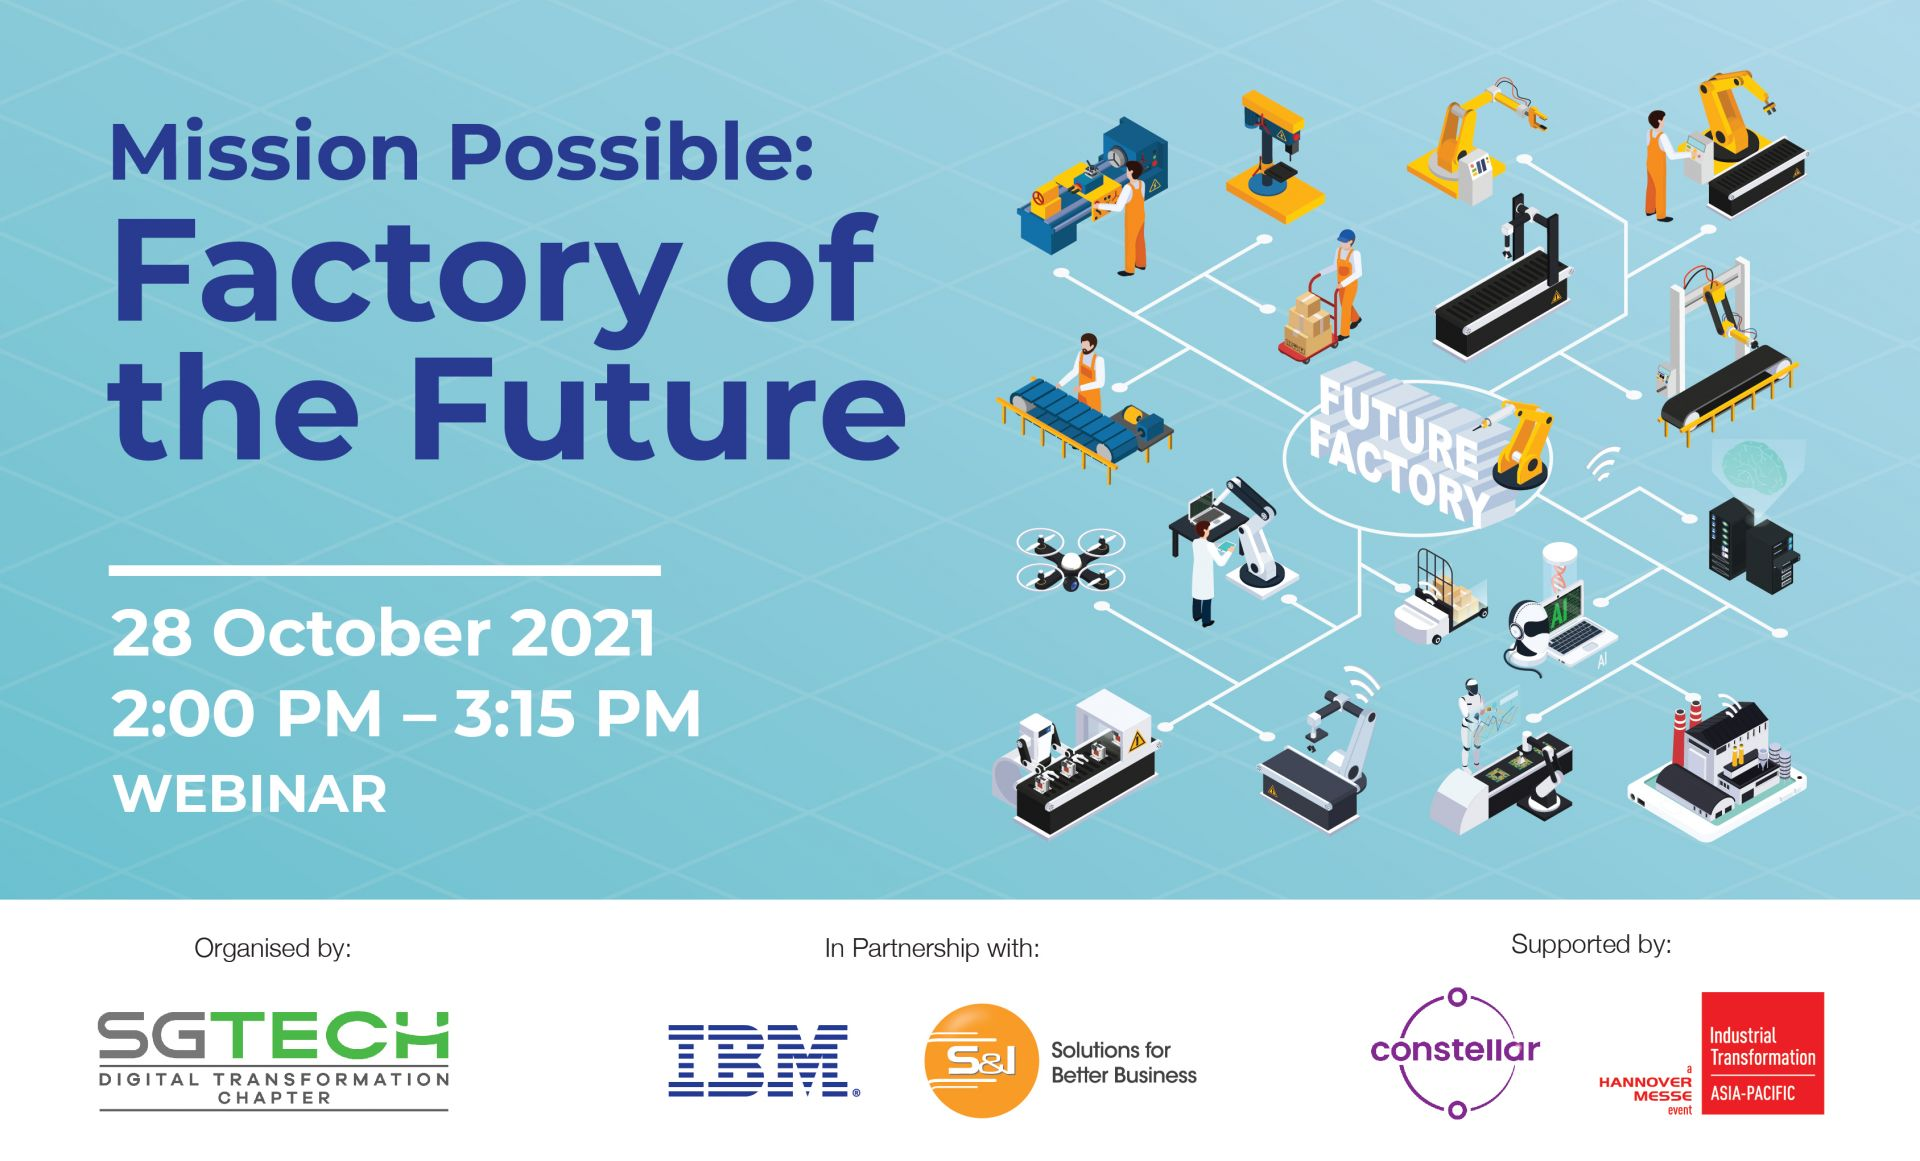 Mission Possible: Factory of the Future